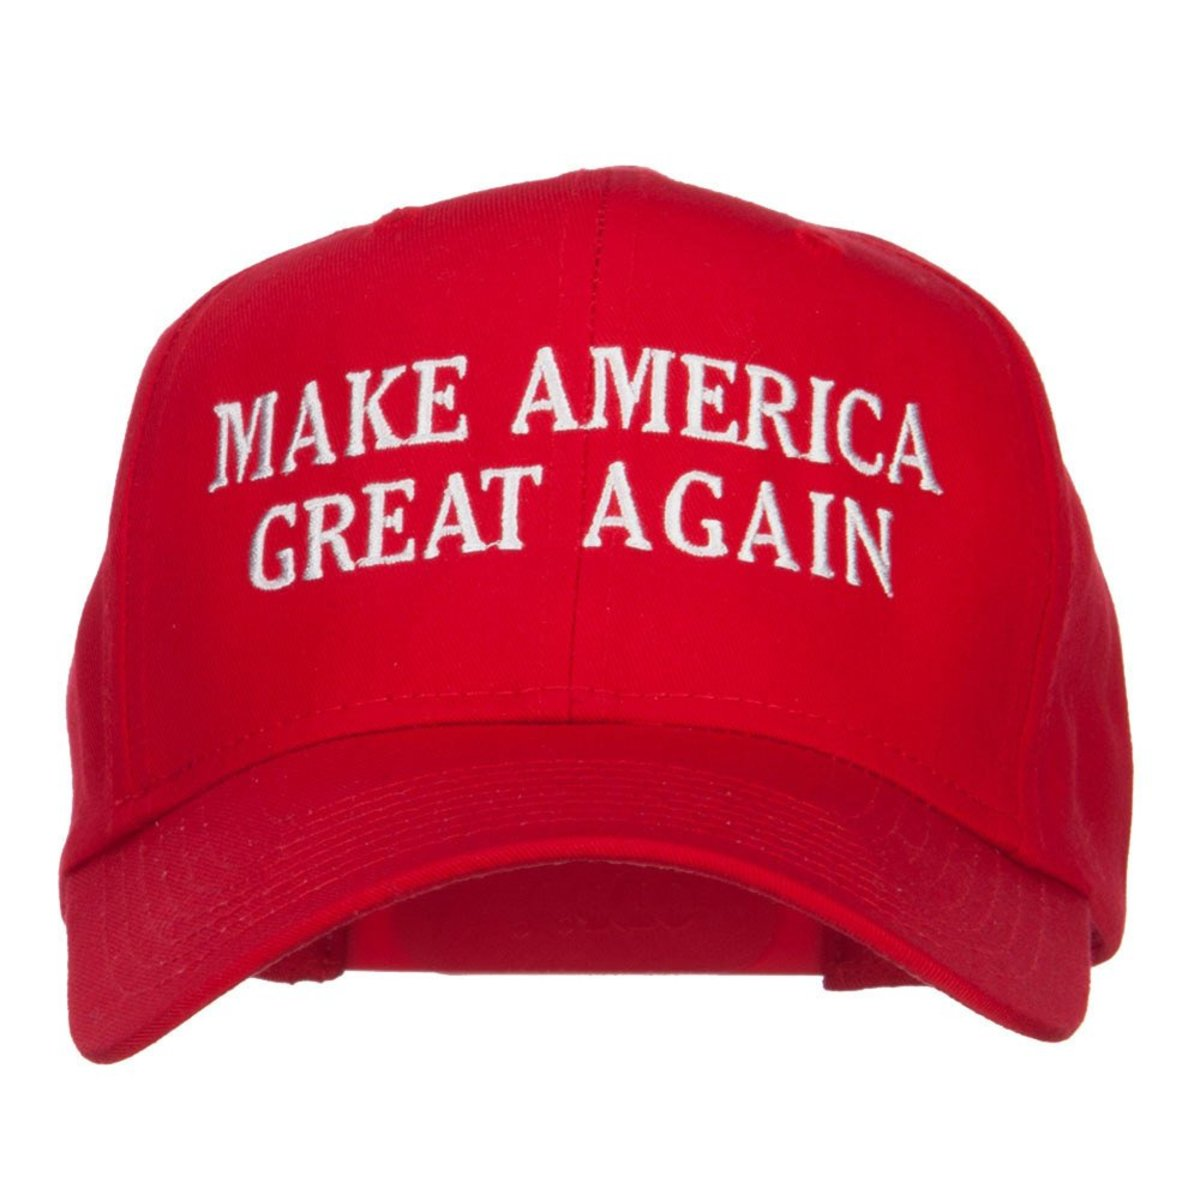 Make America Great Again: What Does It Mean?